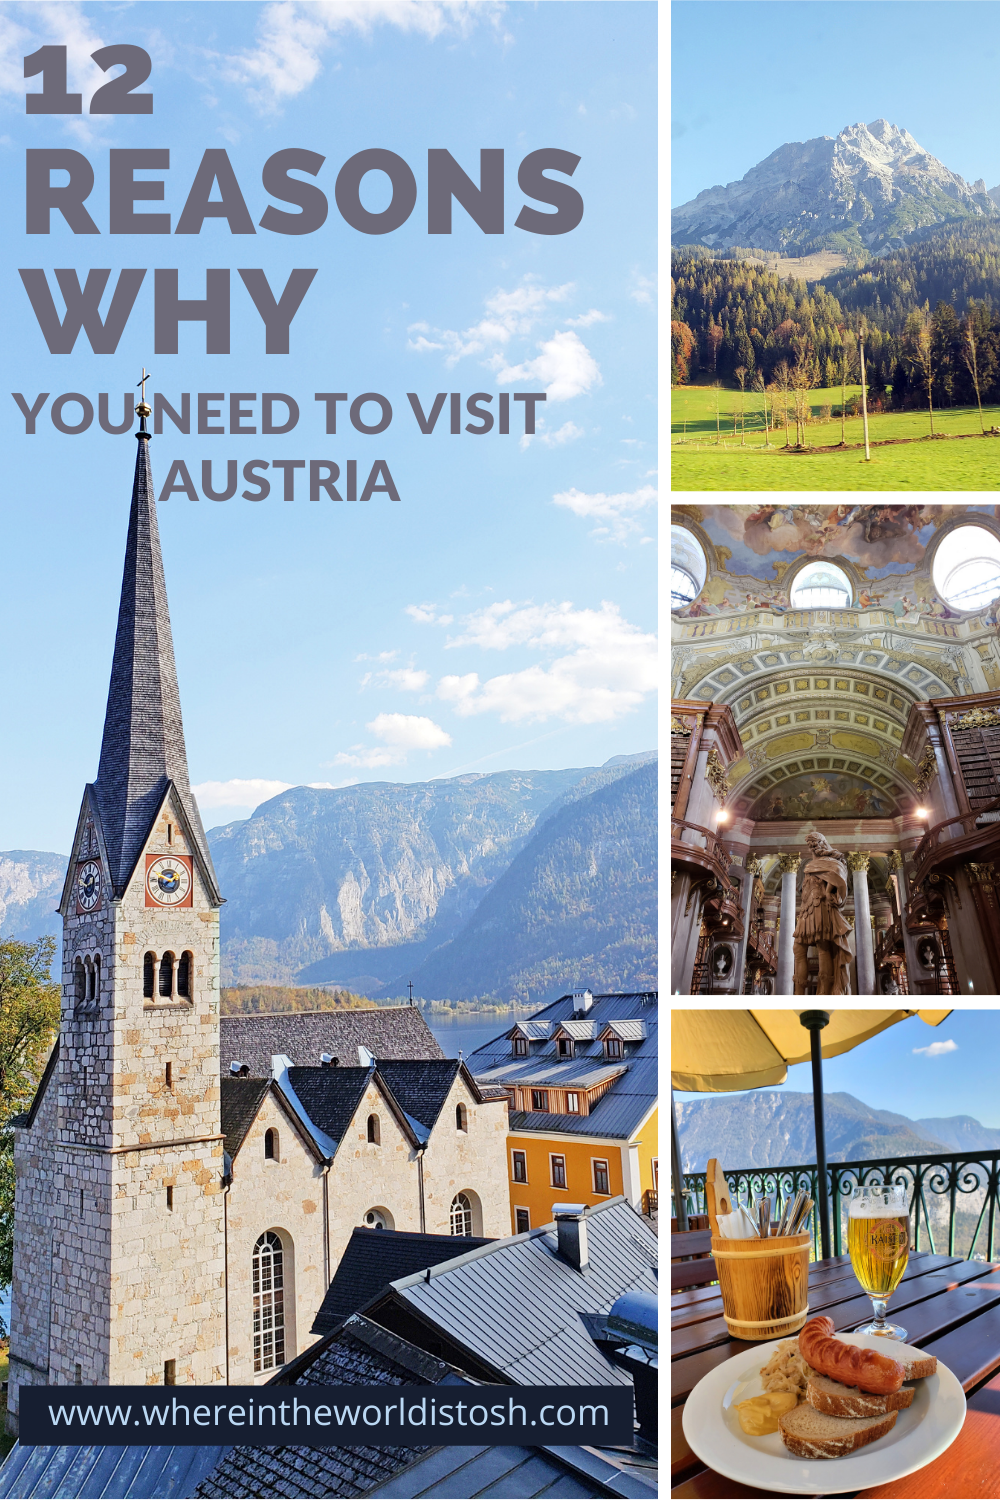 12 Reasons Why You Need To Visit Austria